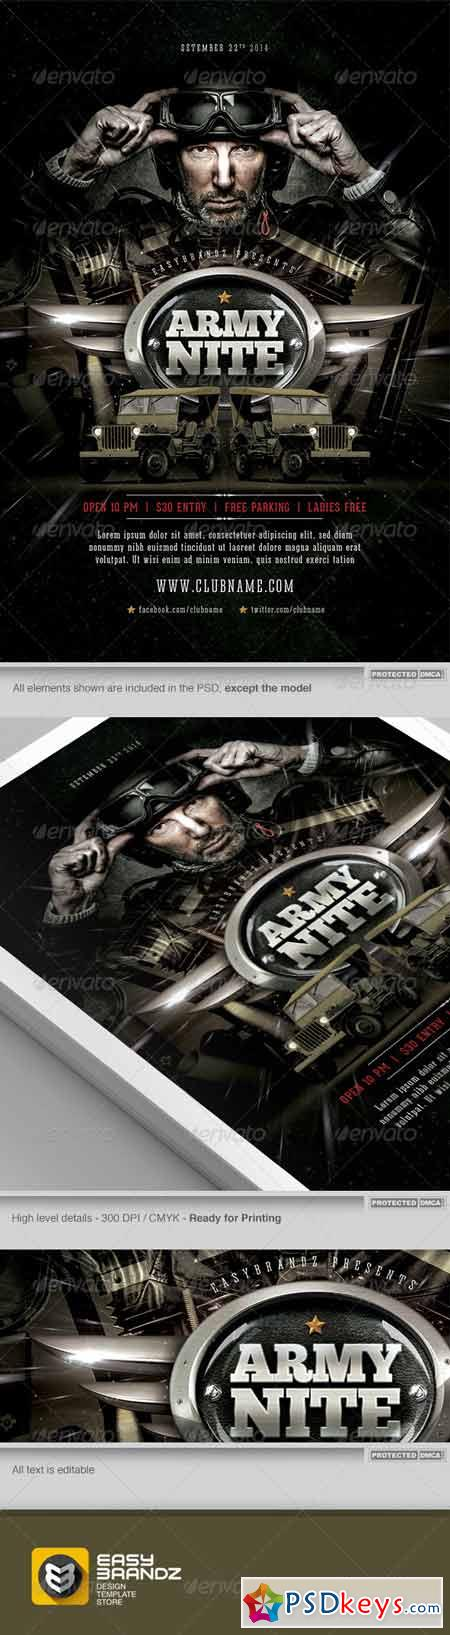 Army Nite Flyer Template 7476586